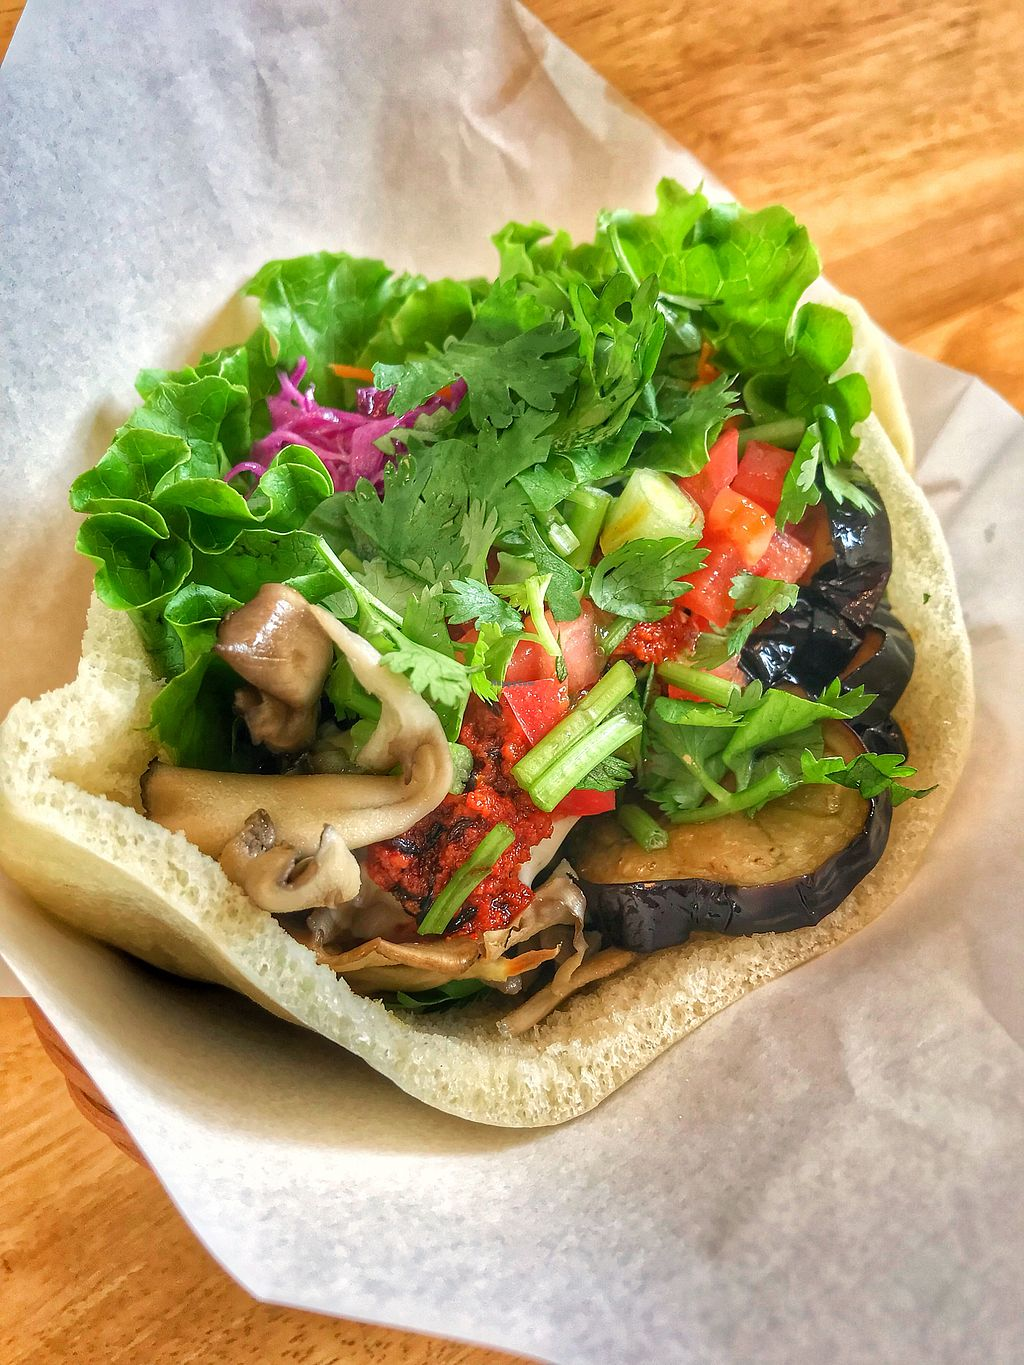 """Photo of Ballon  by <a href=""""/members/profile/EriJimbo"""">EriJimbo</a> <br/>Falafel sandwich w/cilantro topping <br/> October 20, 2017  - <a href='/contact/abuse/image/97750/316974'>Report</a>"""